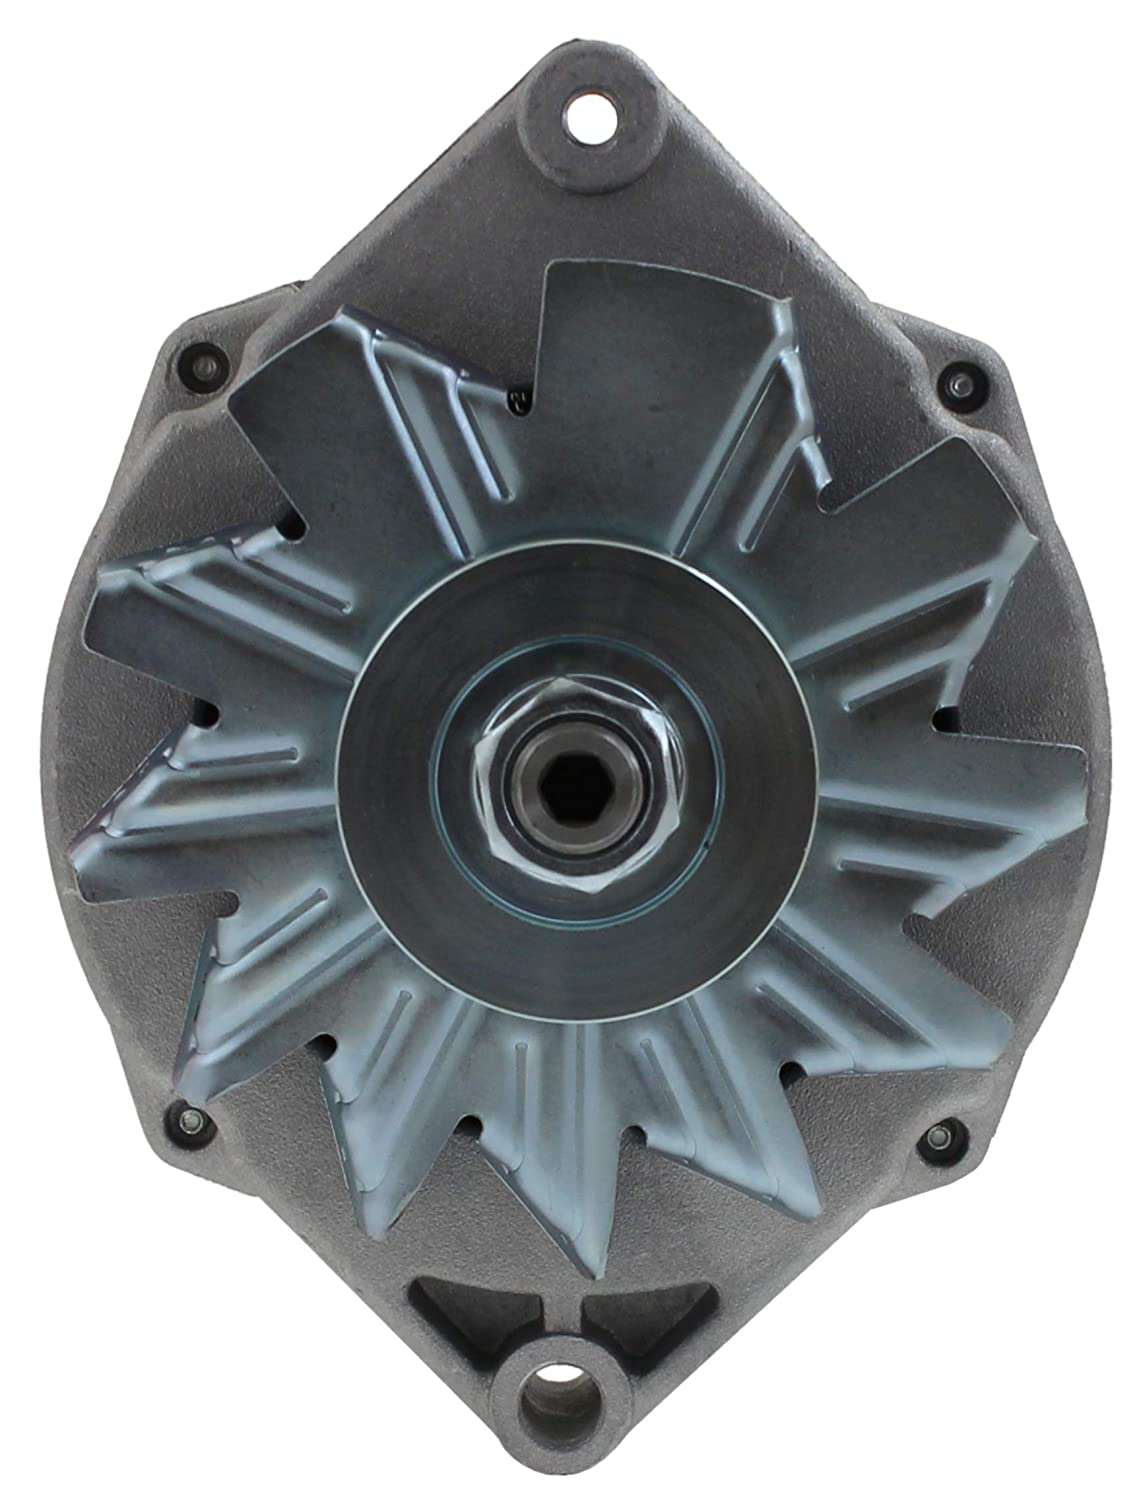 Premium HIGH OUTPUT GM 1 wire alternator 120A with Low Speed Turn on Big Block or Small Block Delco type